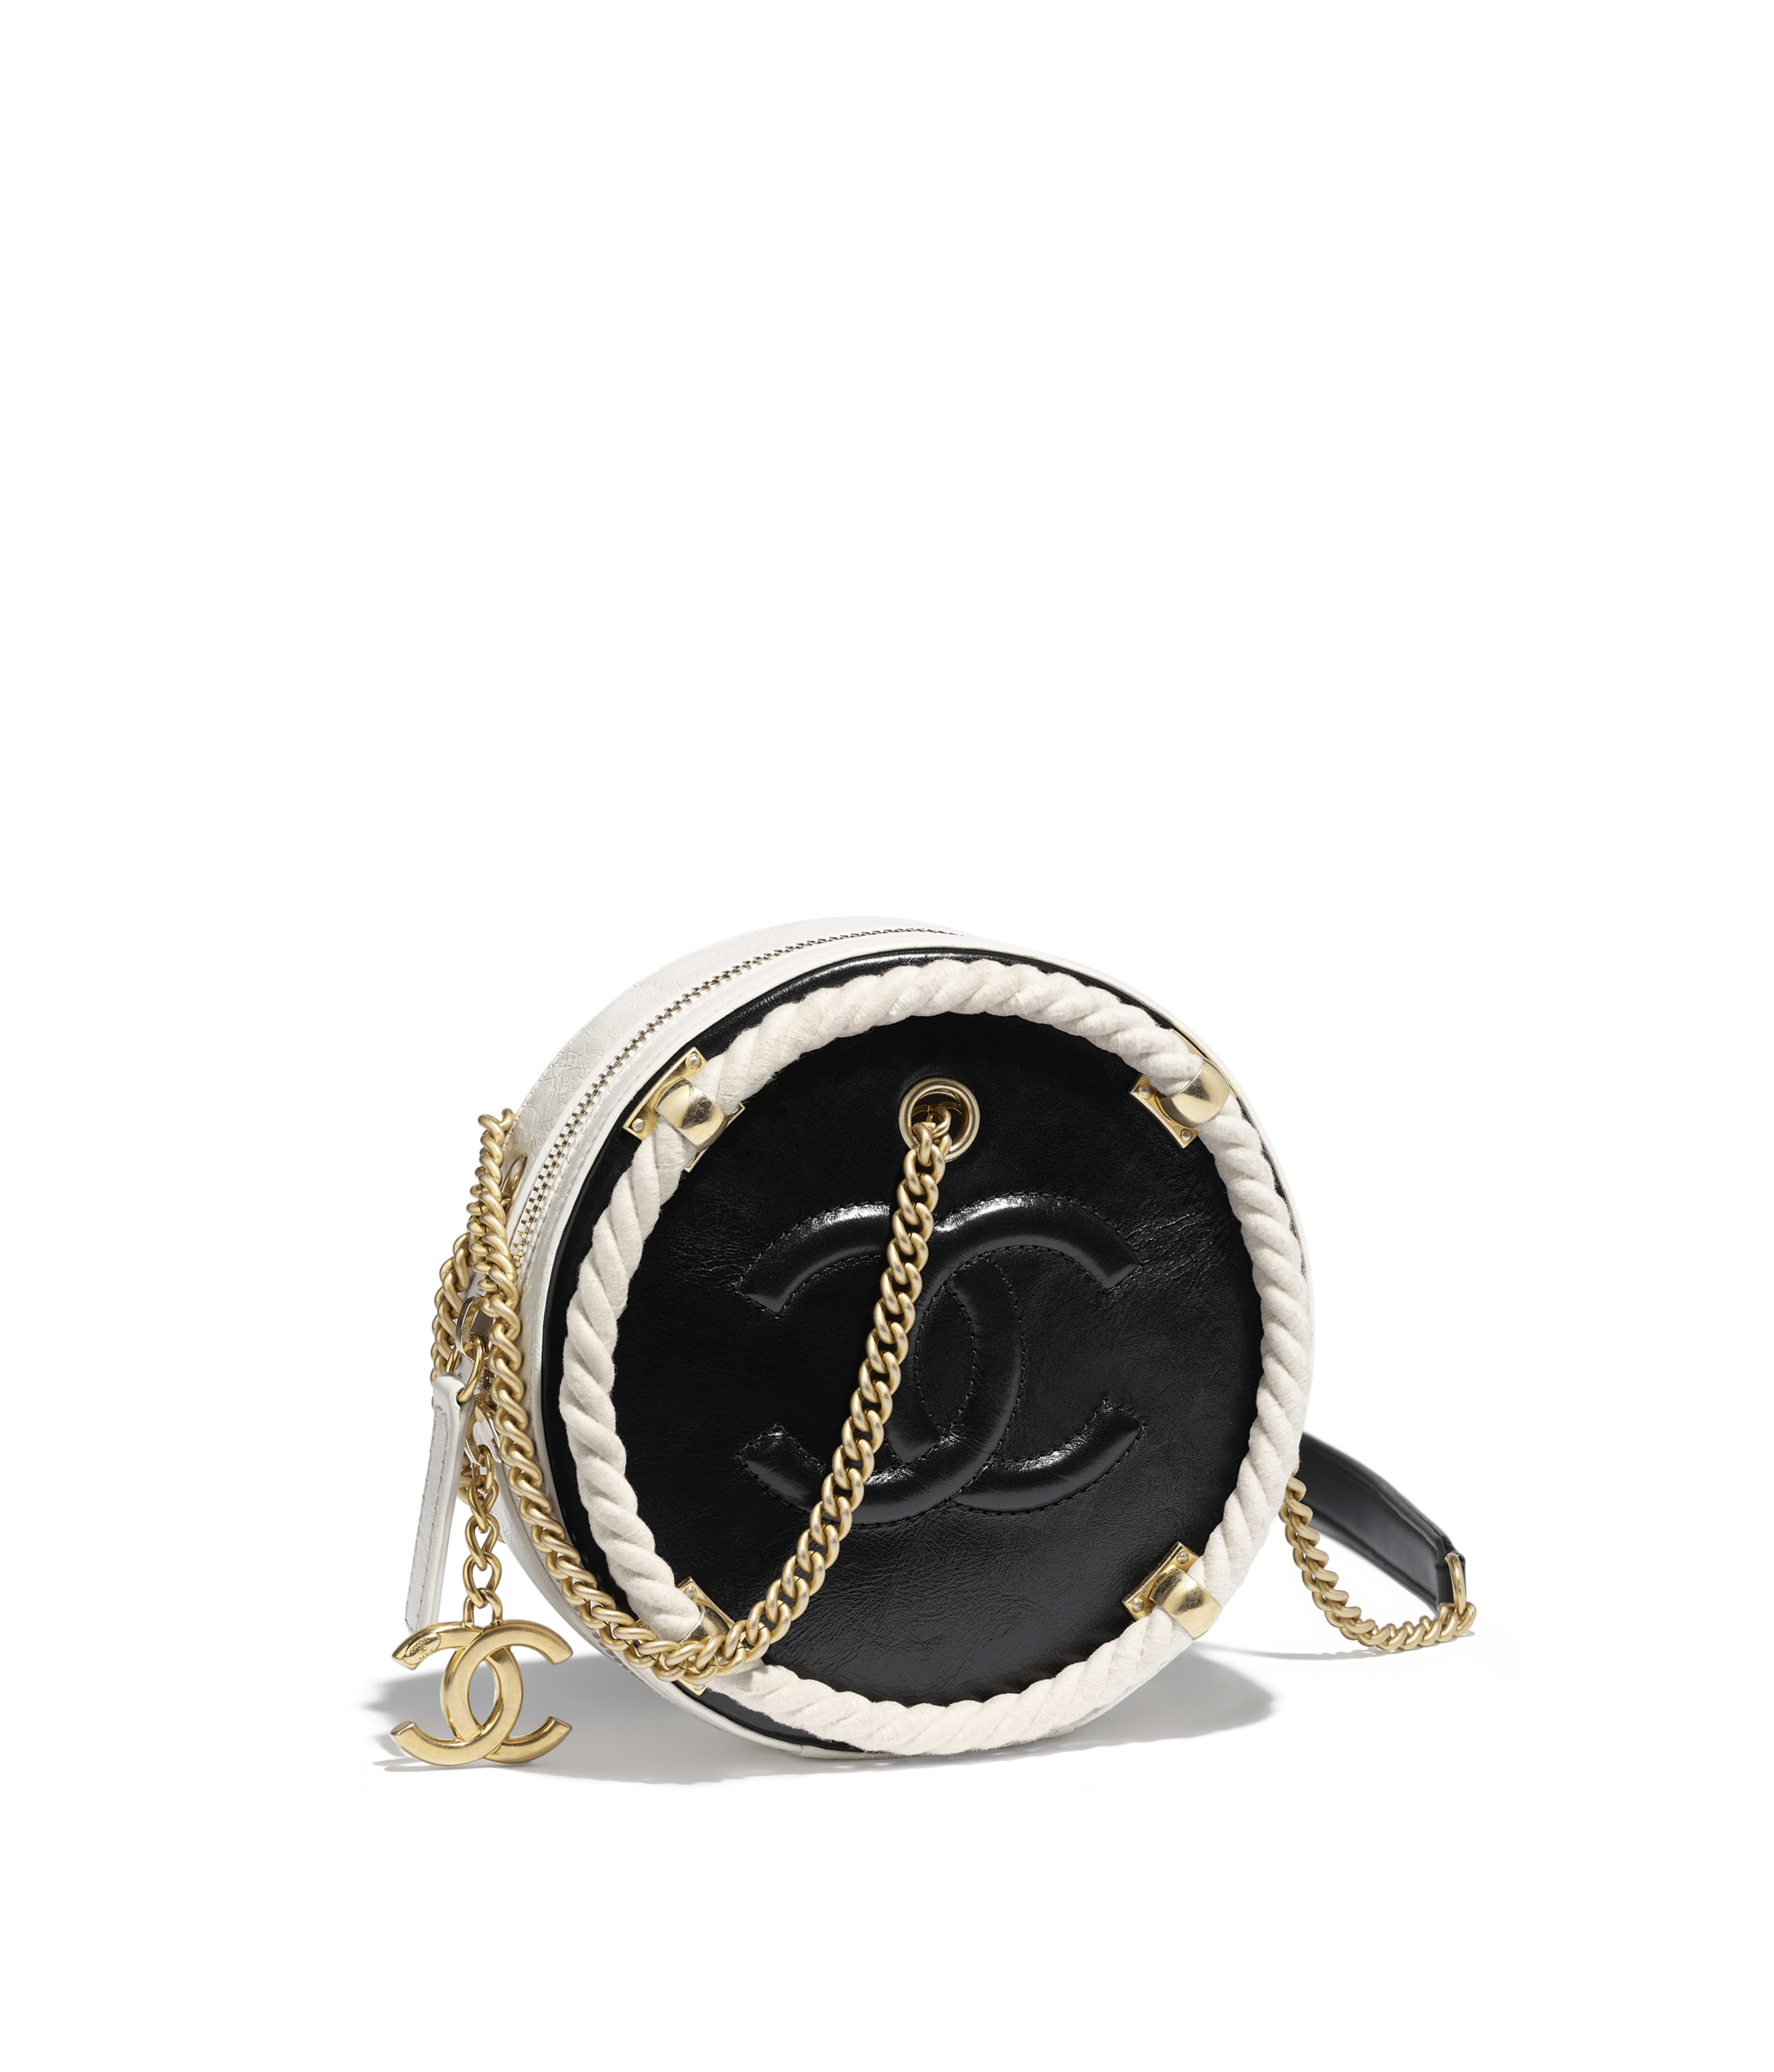 Small Round Bag Crumpled Calfskin Cotton Gold Tone Metal Black White Ref As0075y84101c0229